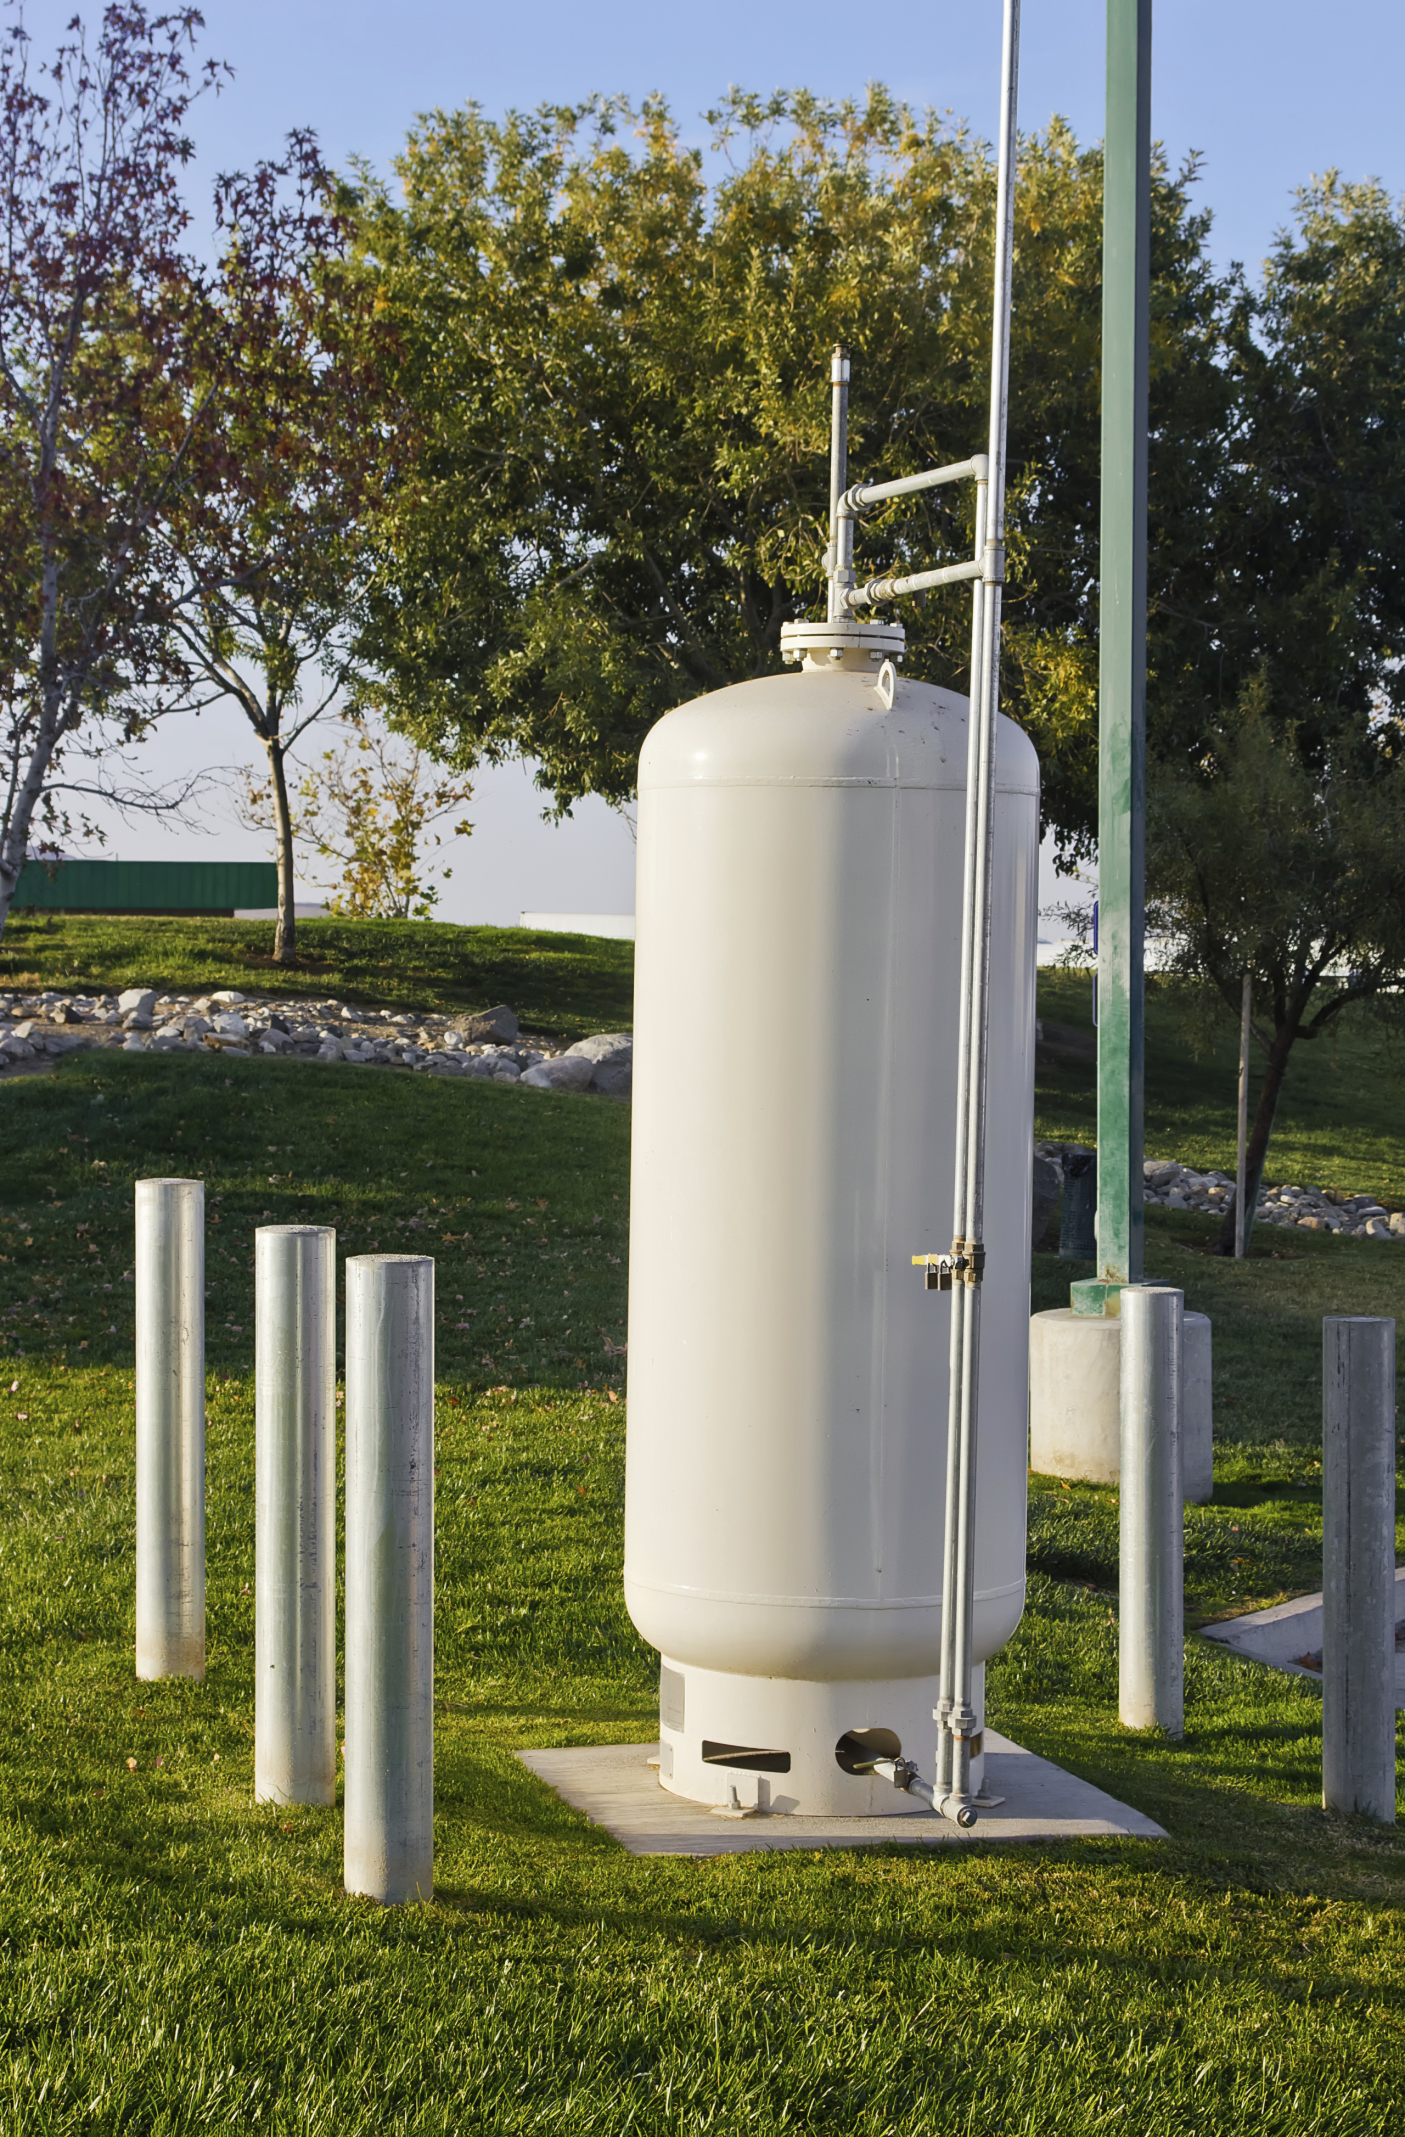 How To Convert A Water Column To Pounds Of Pressure